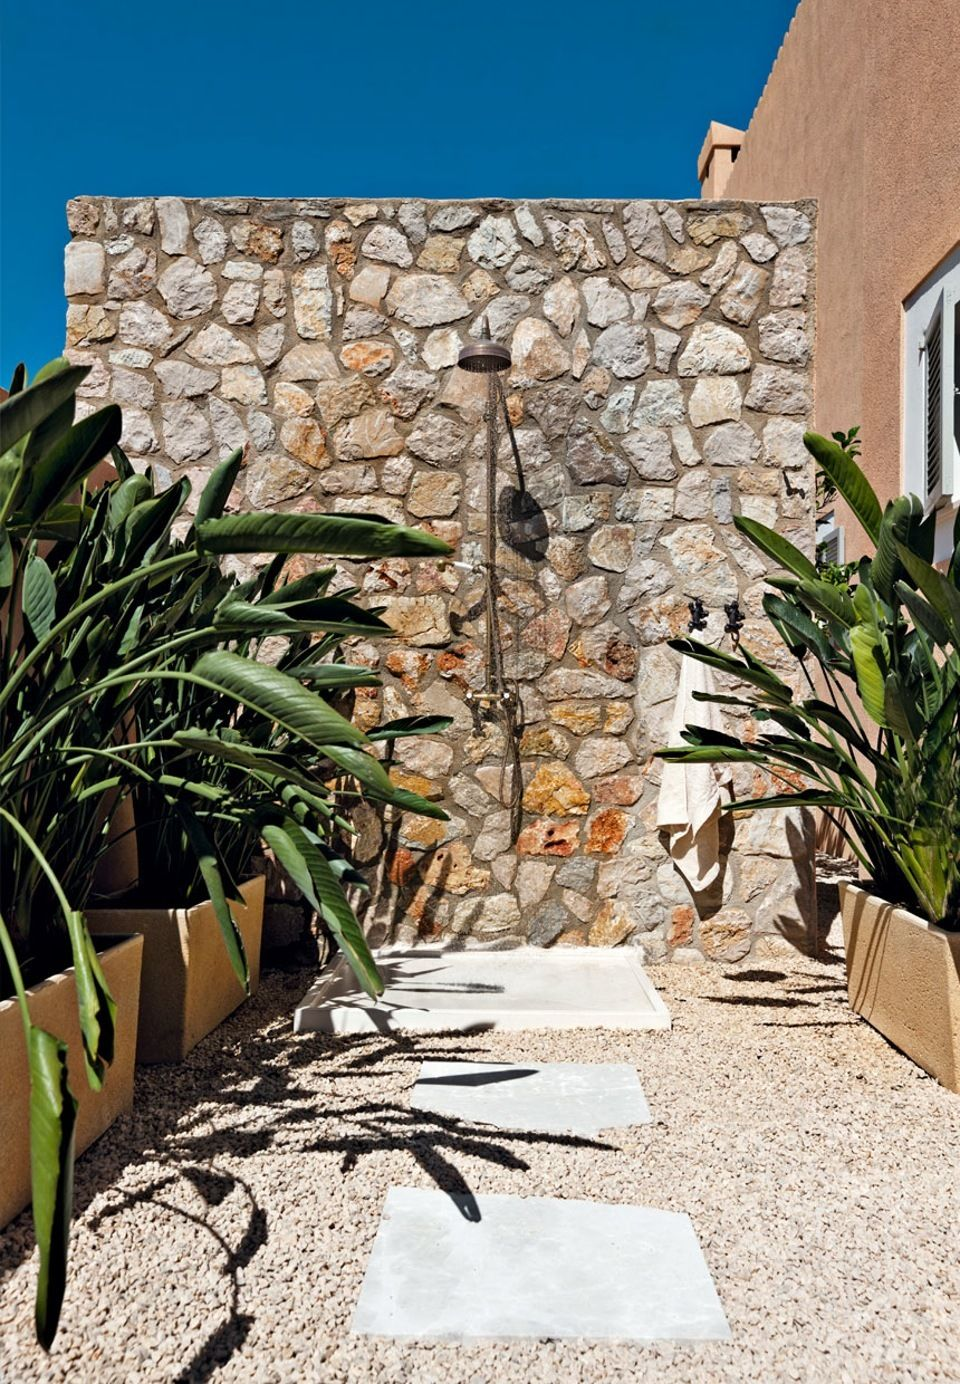 lovely and simple outdoor shower in a mallorcan backyard garden